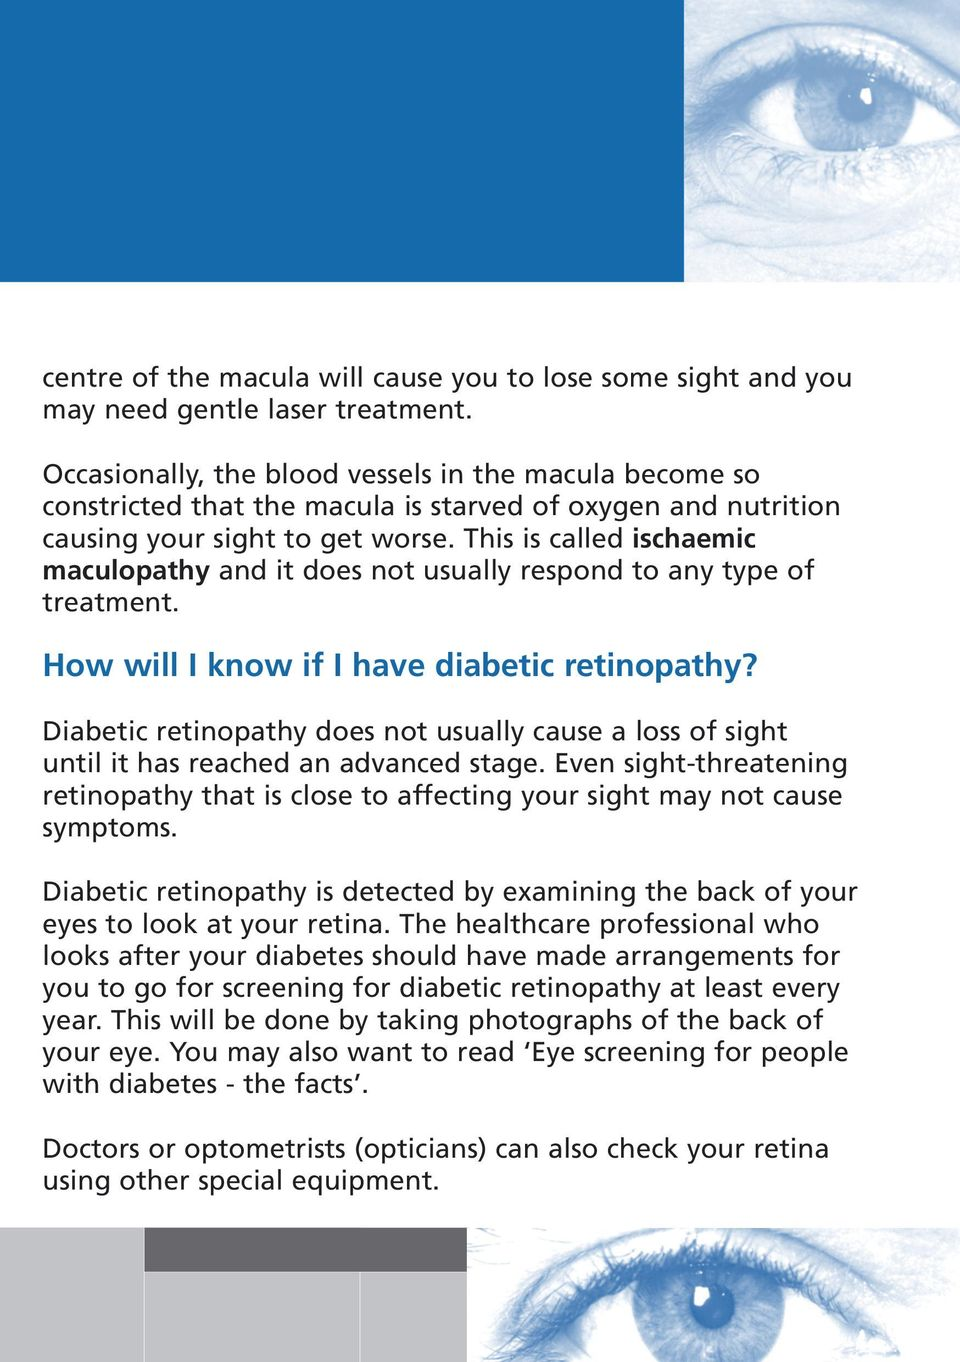 This is called ischaemic maculopathy and it does not usually respond to any type of treatment. How will I know if I have diabetic retinopathy?